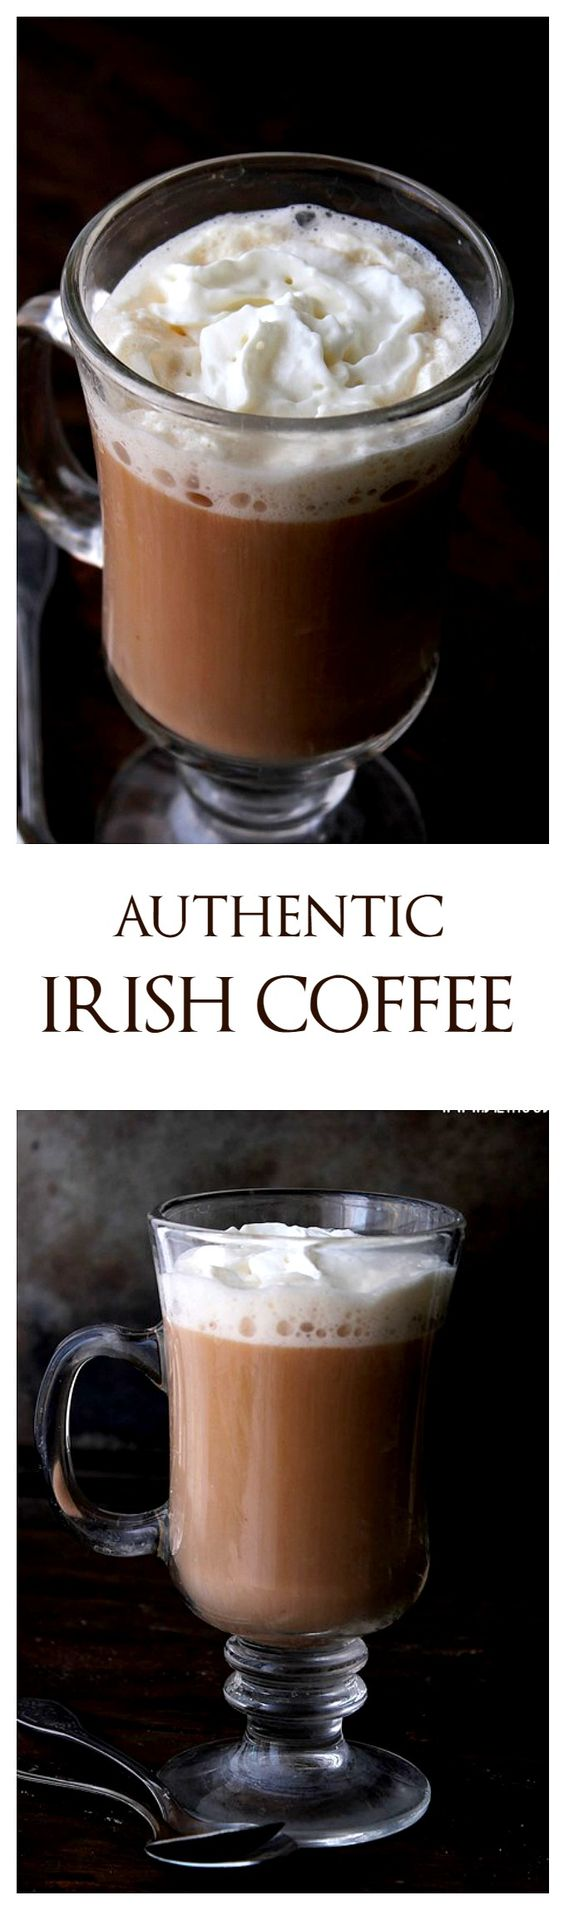 And of course, we can't forget everyone's favorite, a nice tall Irish coffee. With three easy ingredients of coffee, Irish whiskey and heavy cream, it's a snap to brew up.